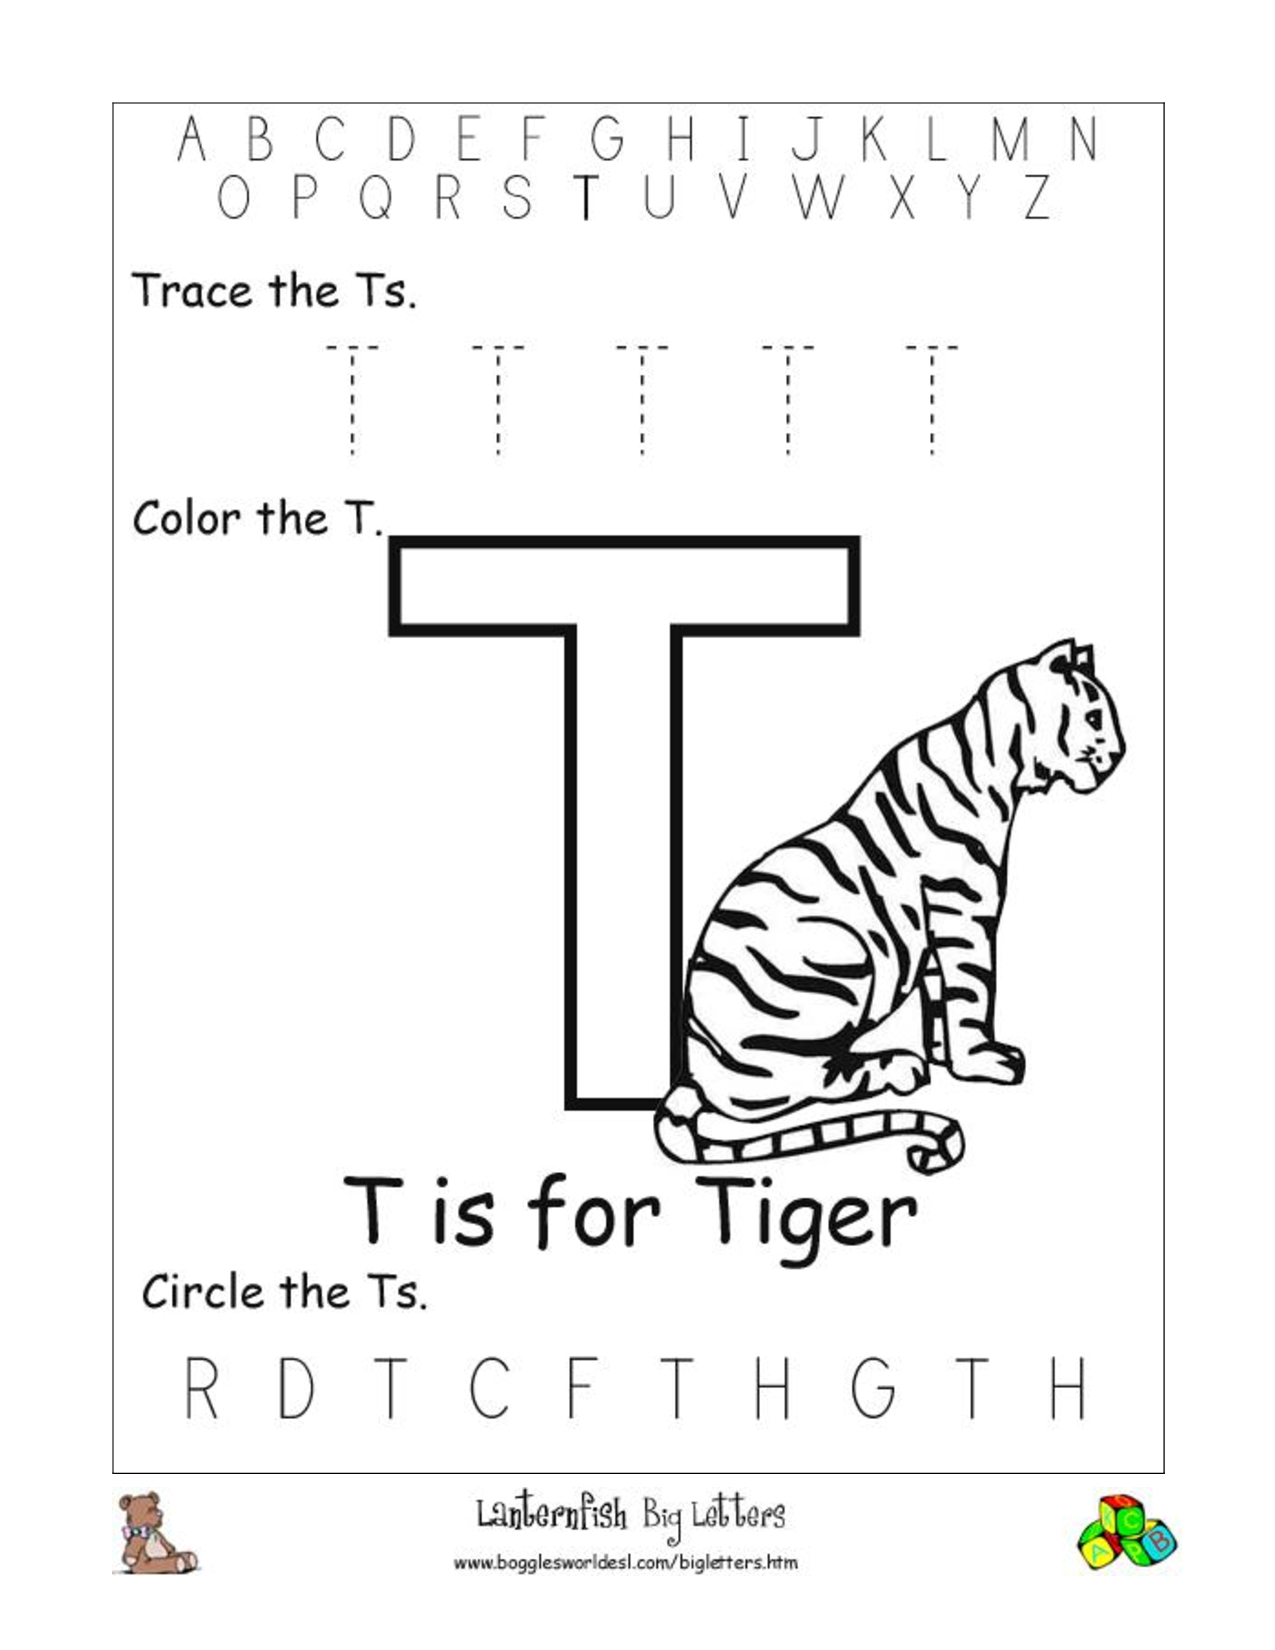 20 Learning The Letter T Worksheets | Kittybabylove in Letter T Worksheets Sparklebox